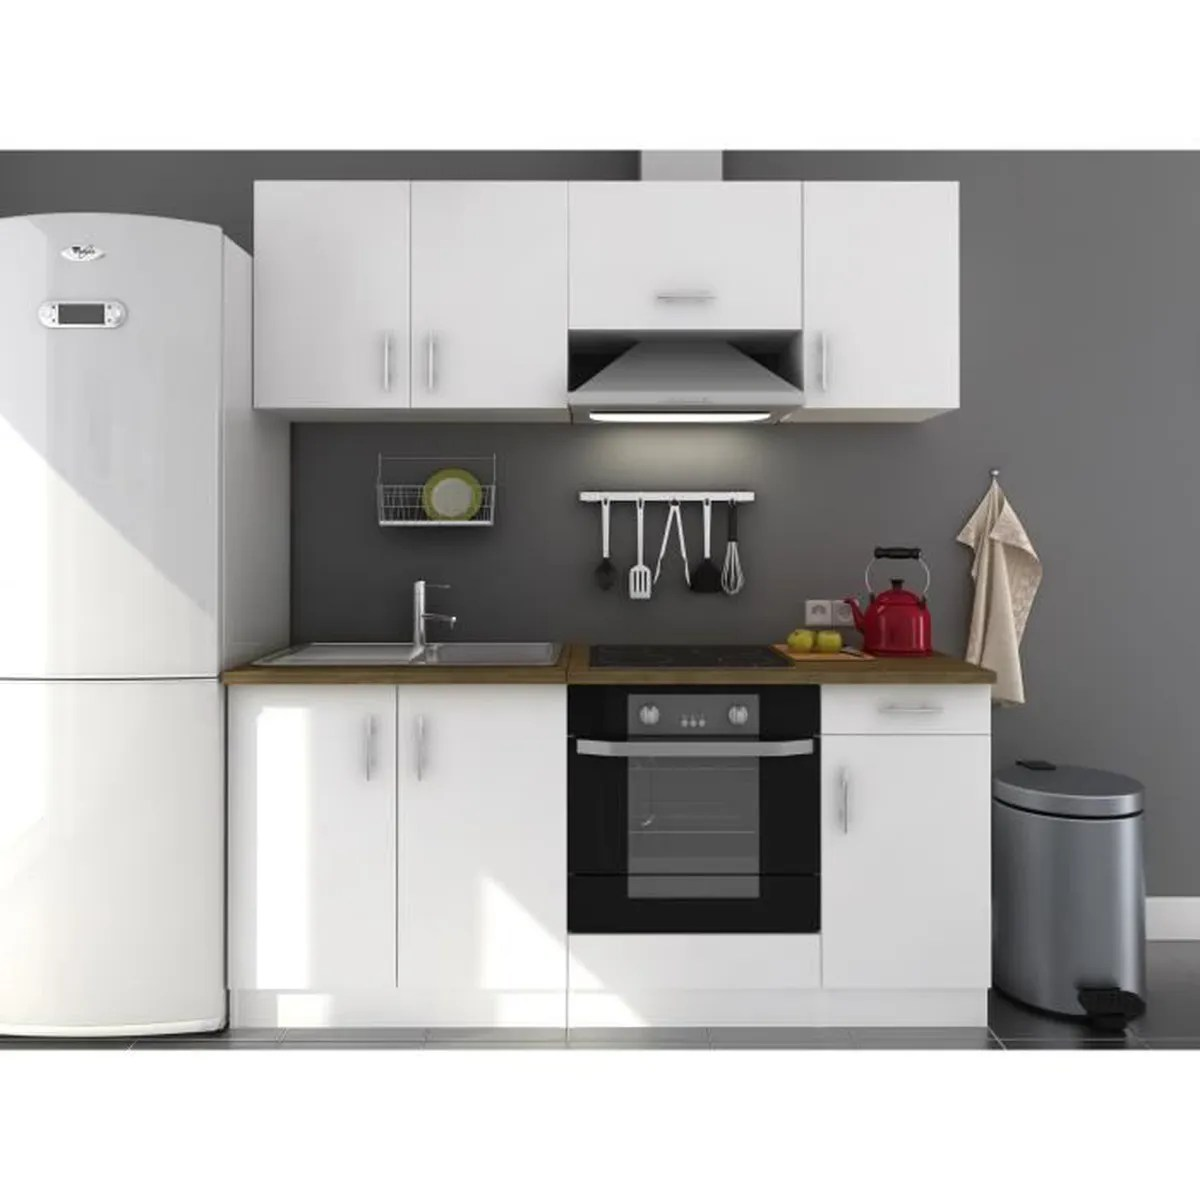 Cucine Low Cost Roma A Tavola Con Piacere With Cucine Low